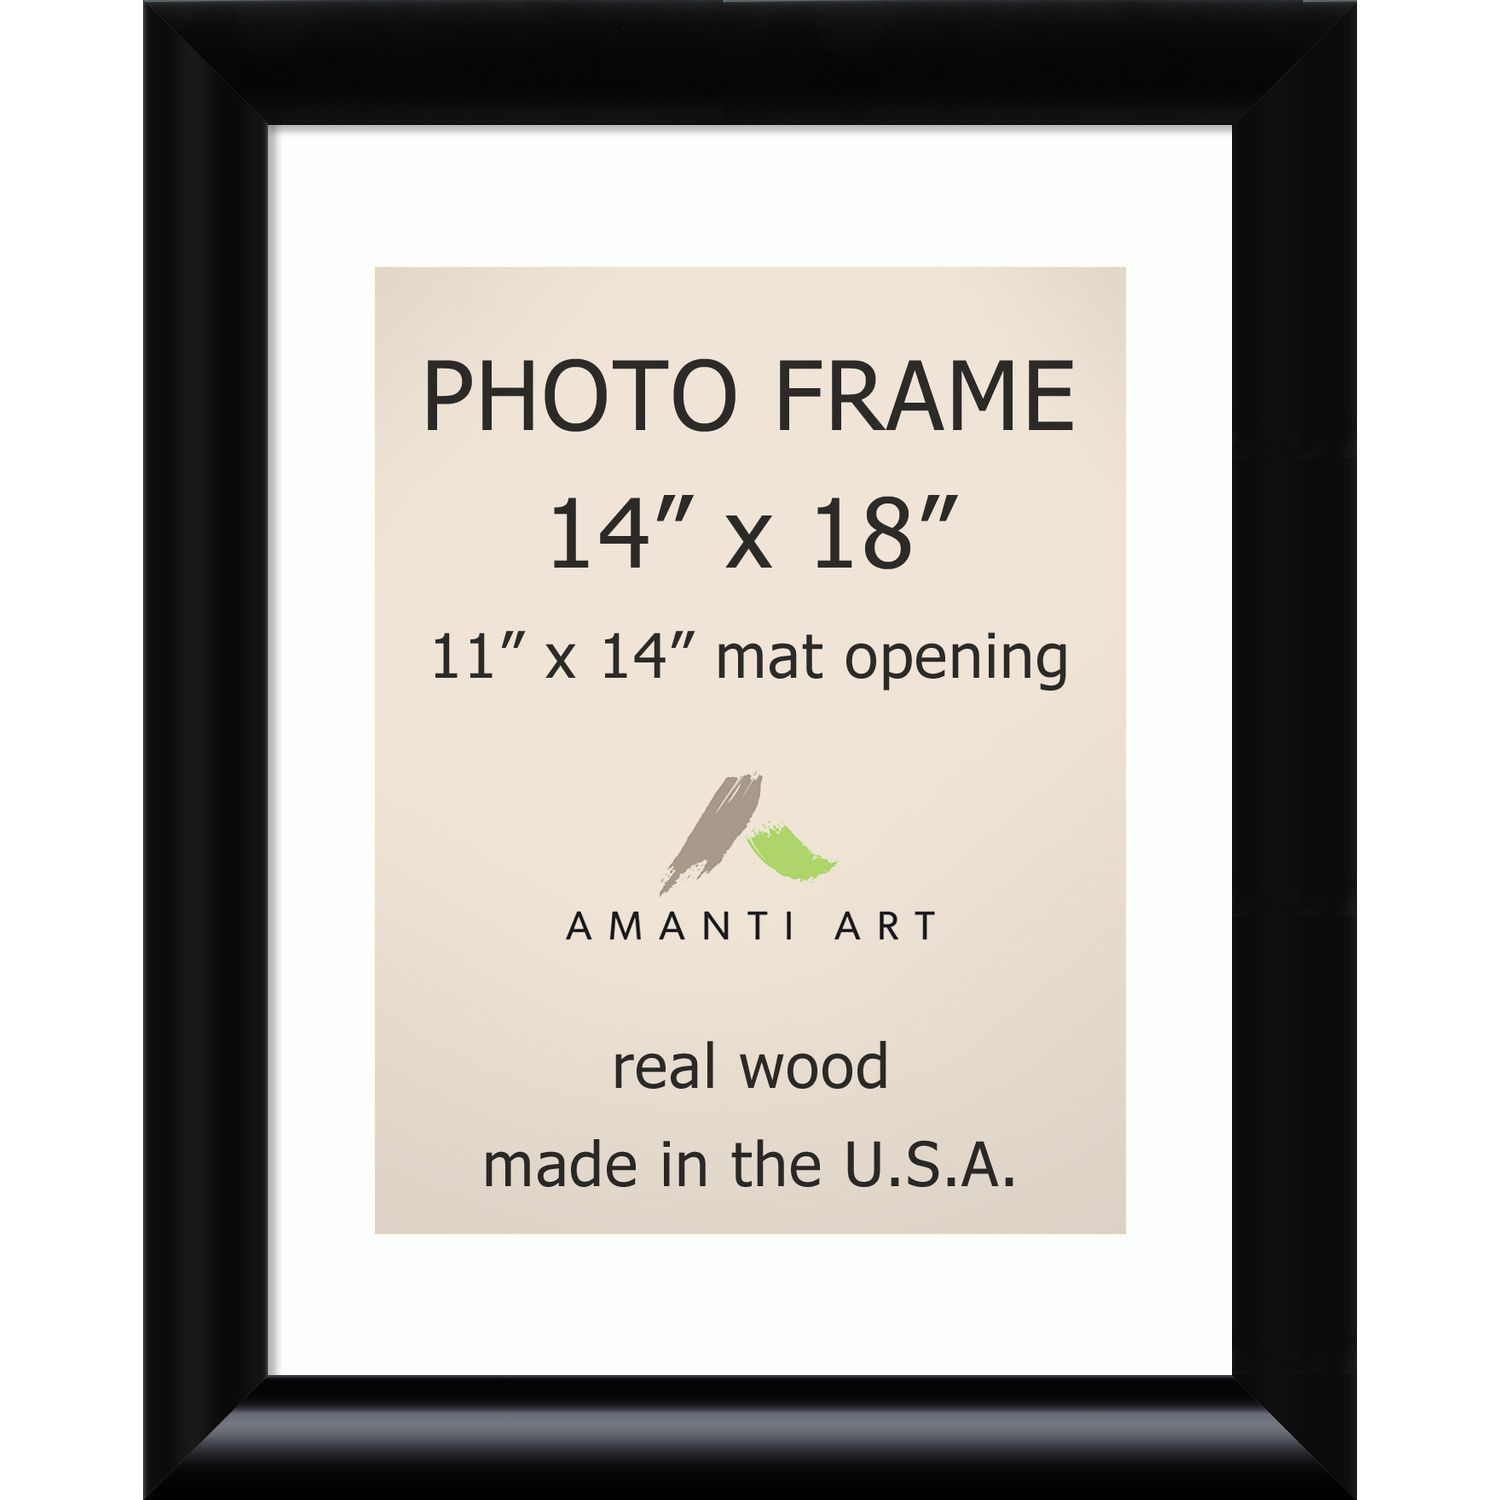 Steinway Black Photo Frame 17 X 21 Inch Black Photo Frame Matted 11x14 17x21 In Wood Black Picture Frames Frame Black Photo Frames